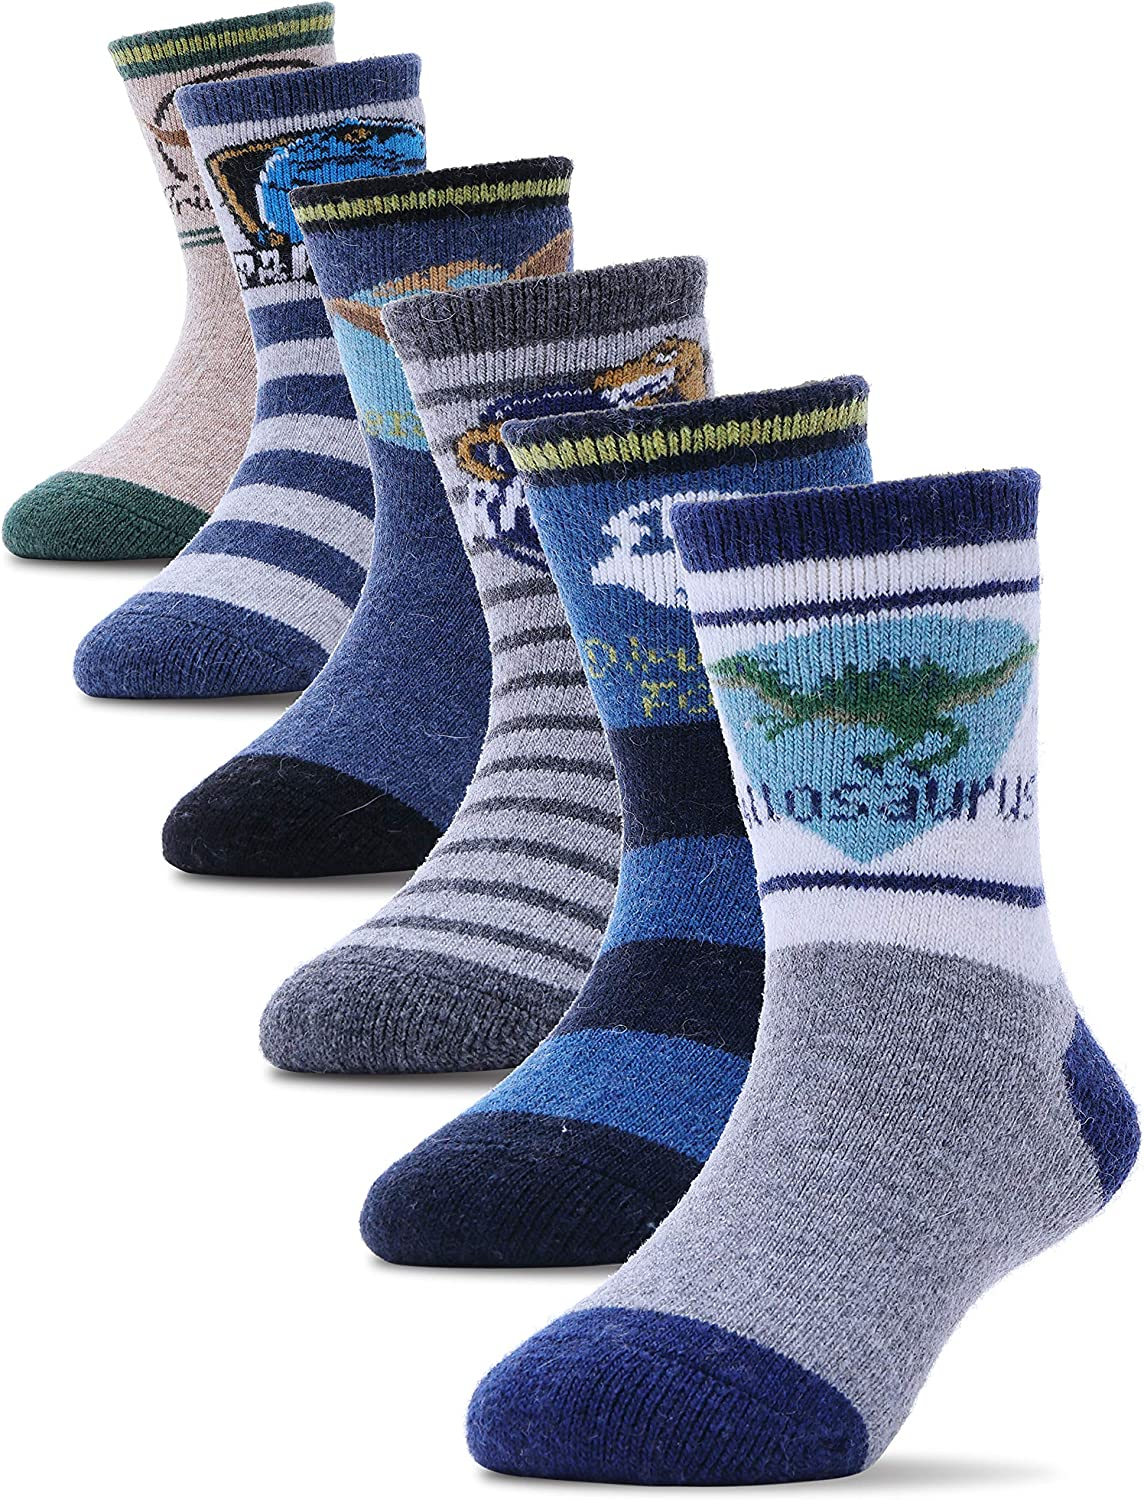 Boys Girls Wool Socks Warm Thermal Thick Cotton Winter Crew Socks For Child Kid Toddlers 6 Pack